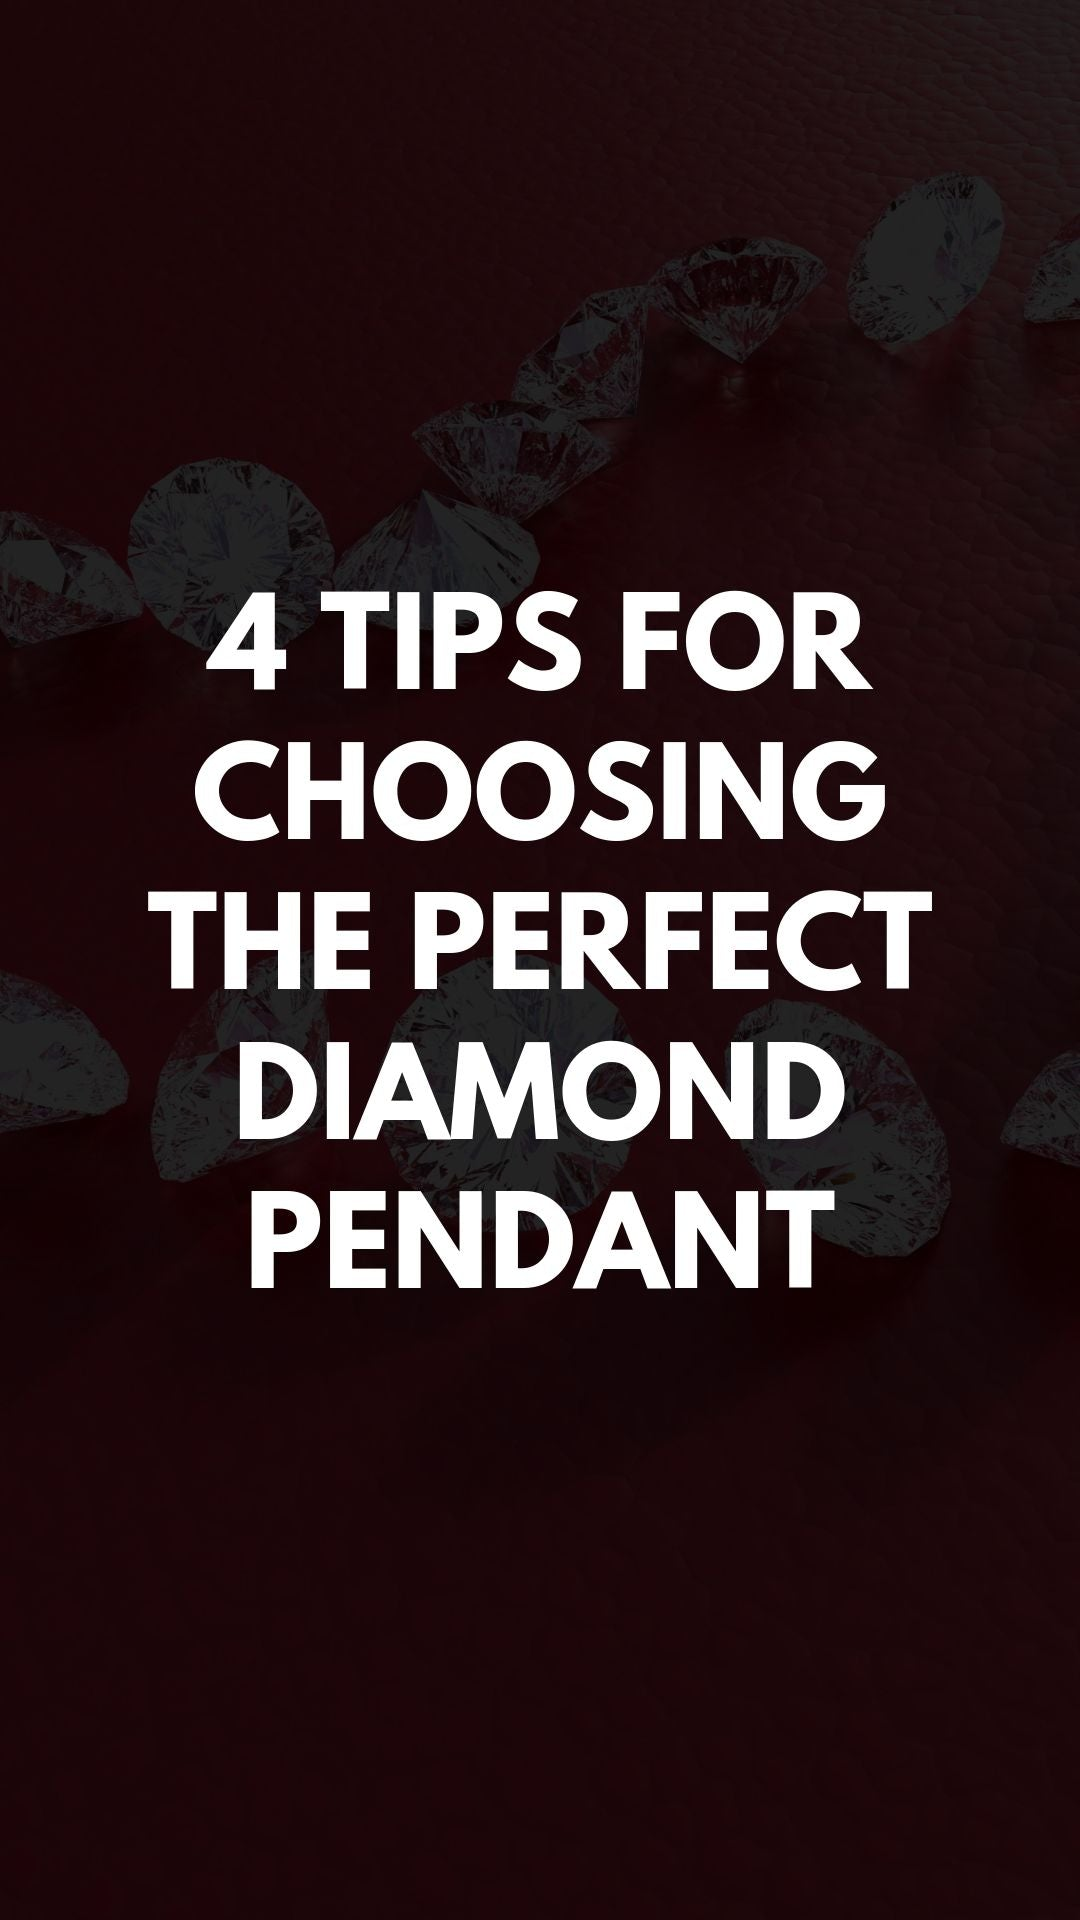 4 Tips for Choosing the Perfect Diamond Pendant